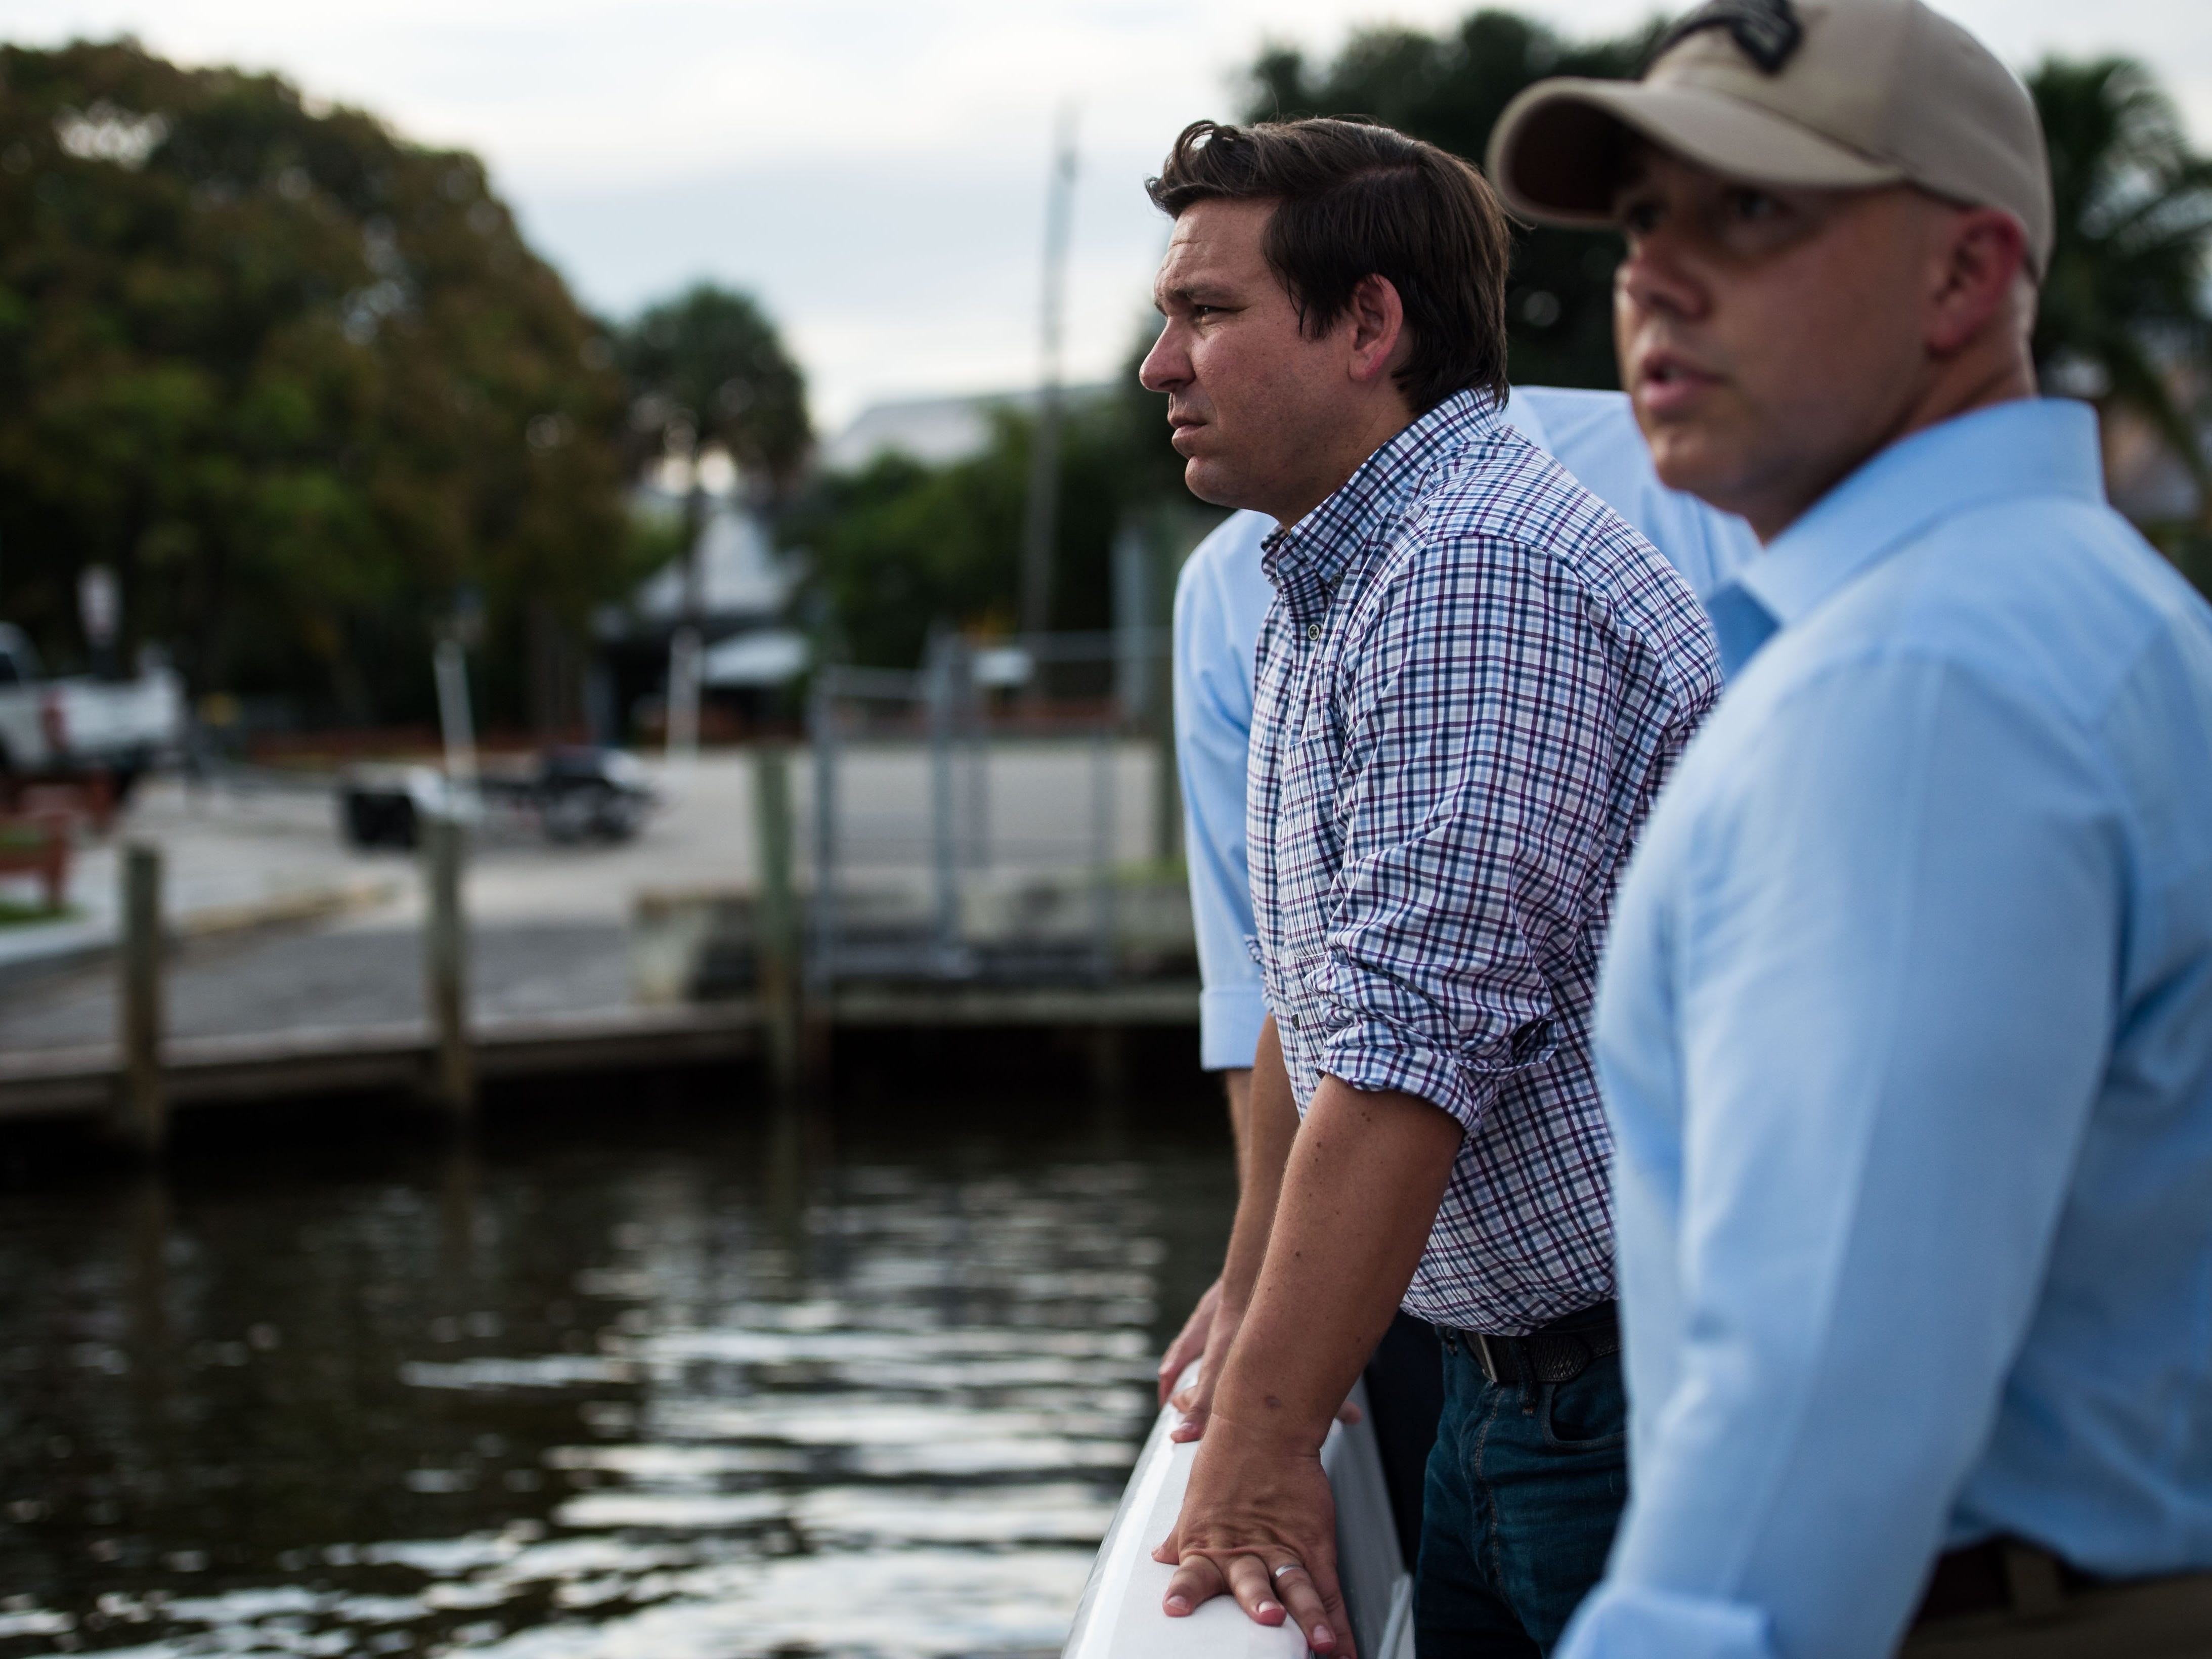 Here's what we could expect DeSantis to do for Florida's environment